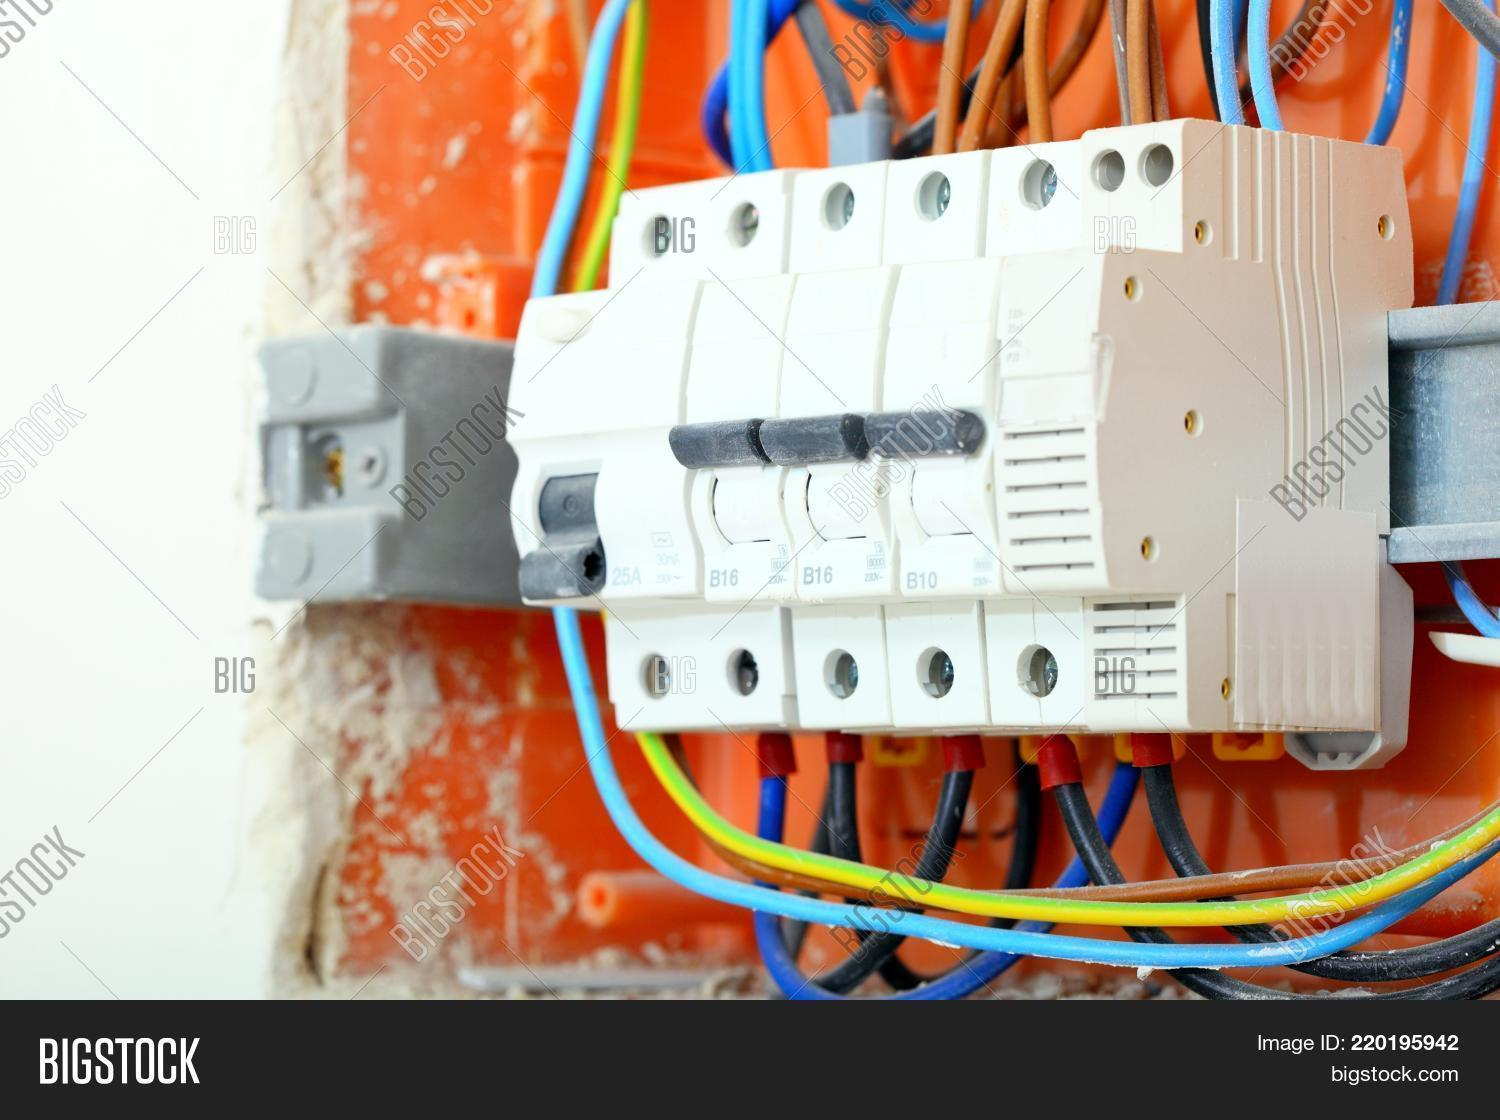 hight resolution of electrical installation close up electrical panel electricity distribution box with wires fuses and contactors